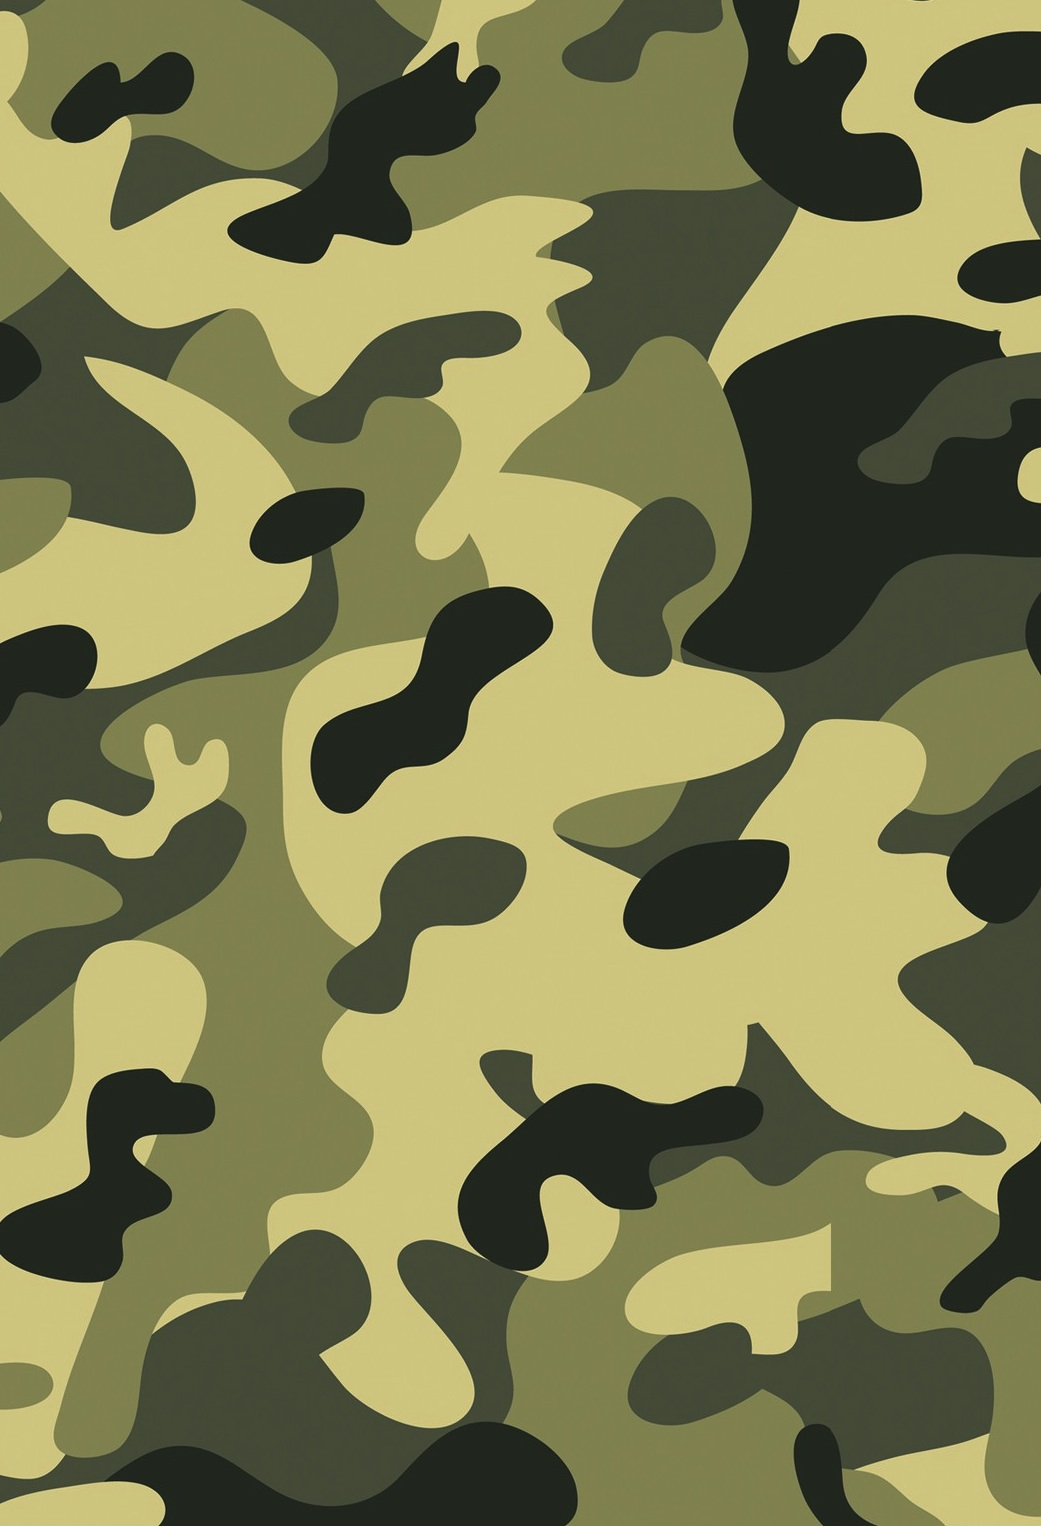 Pink Camo Wallpaper For Iphone Camouflage pattern 1041x1526